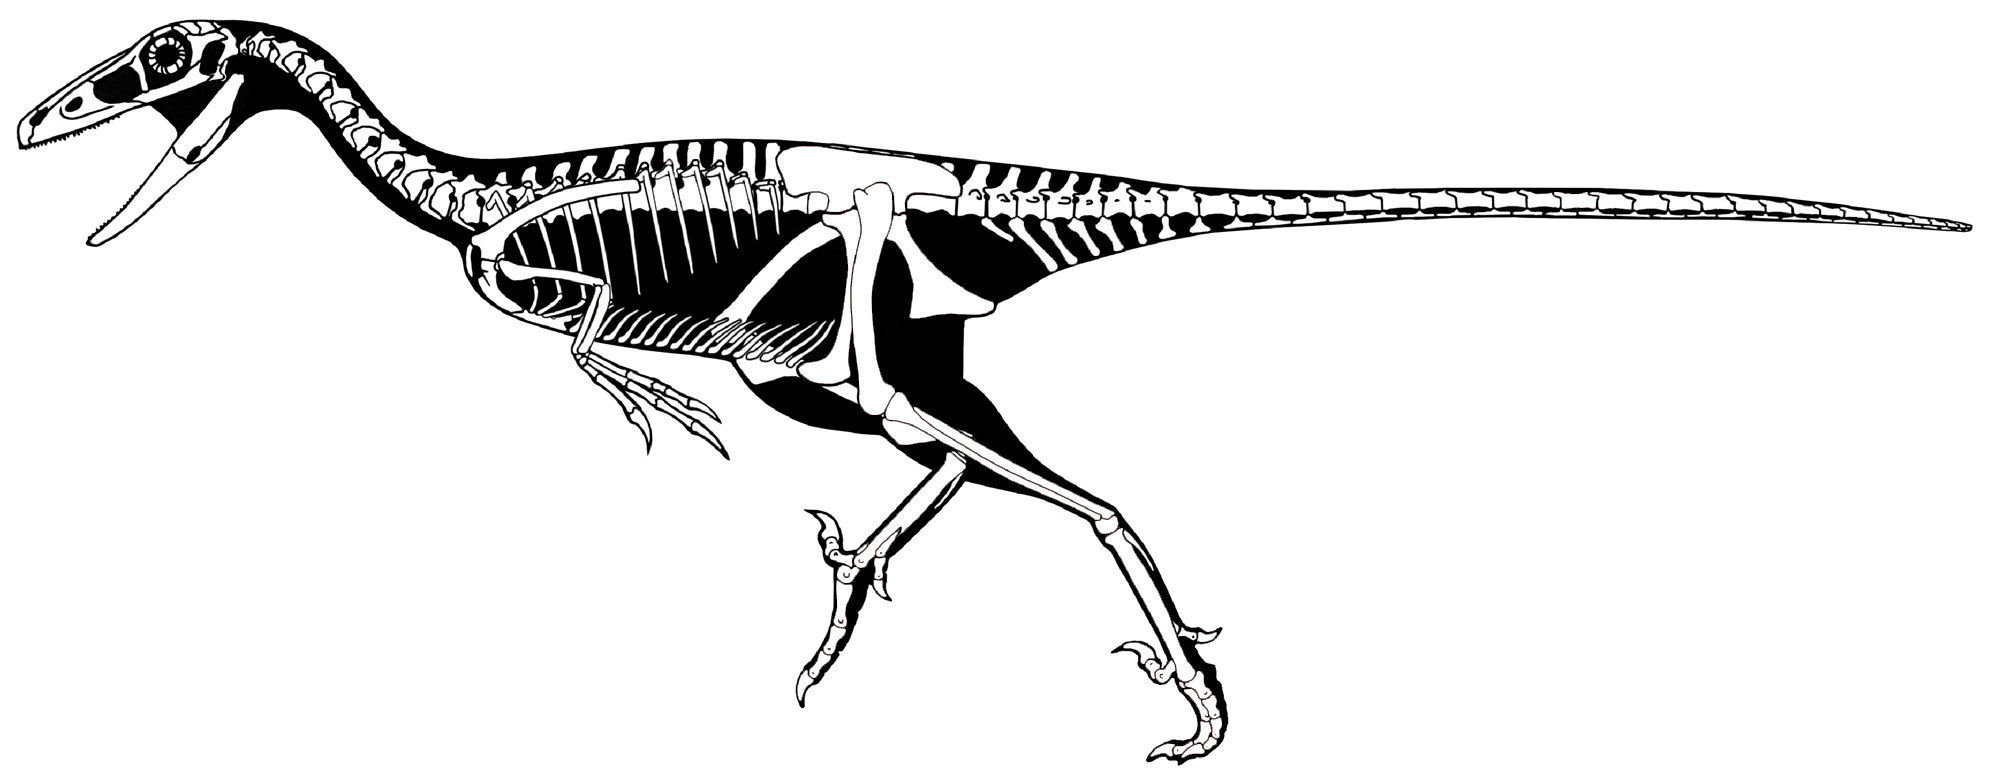 Troodon inequalis